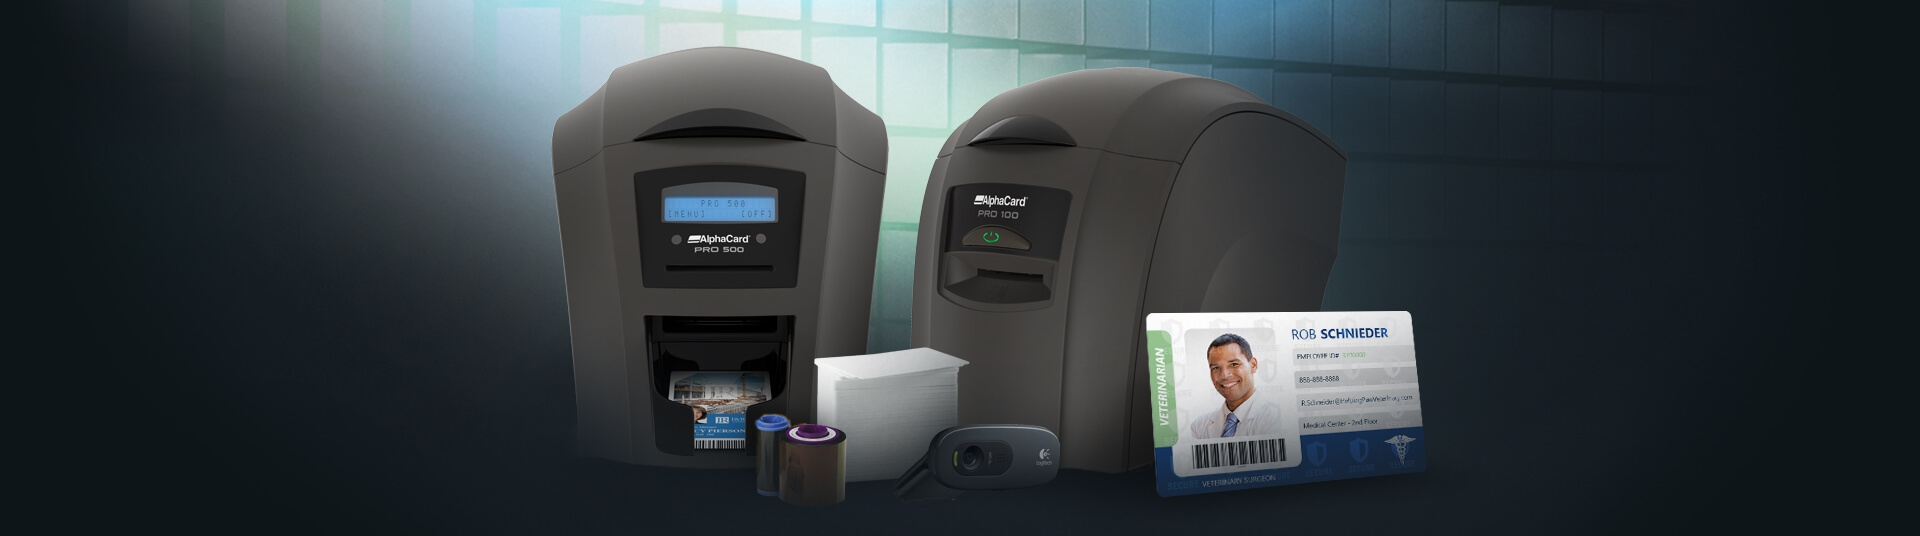 AlphaCard Printer Systems